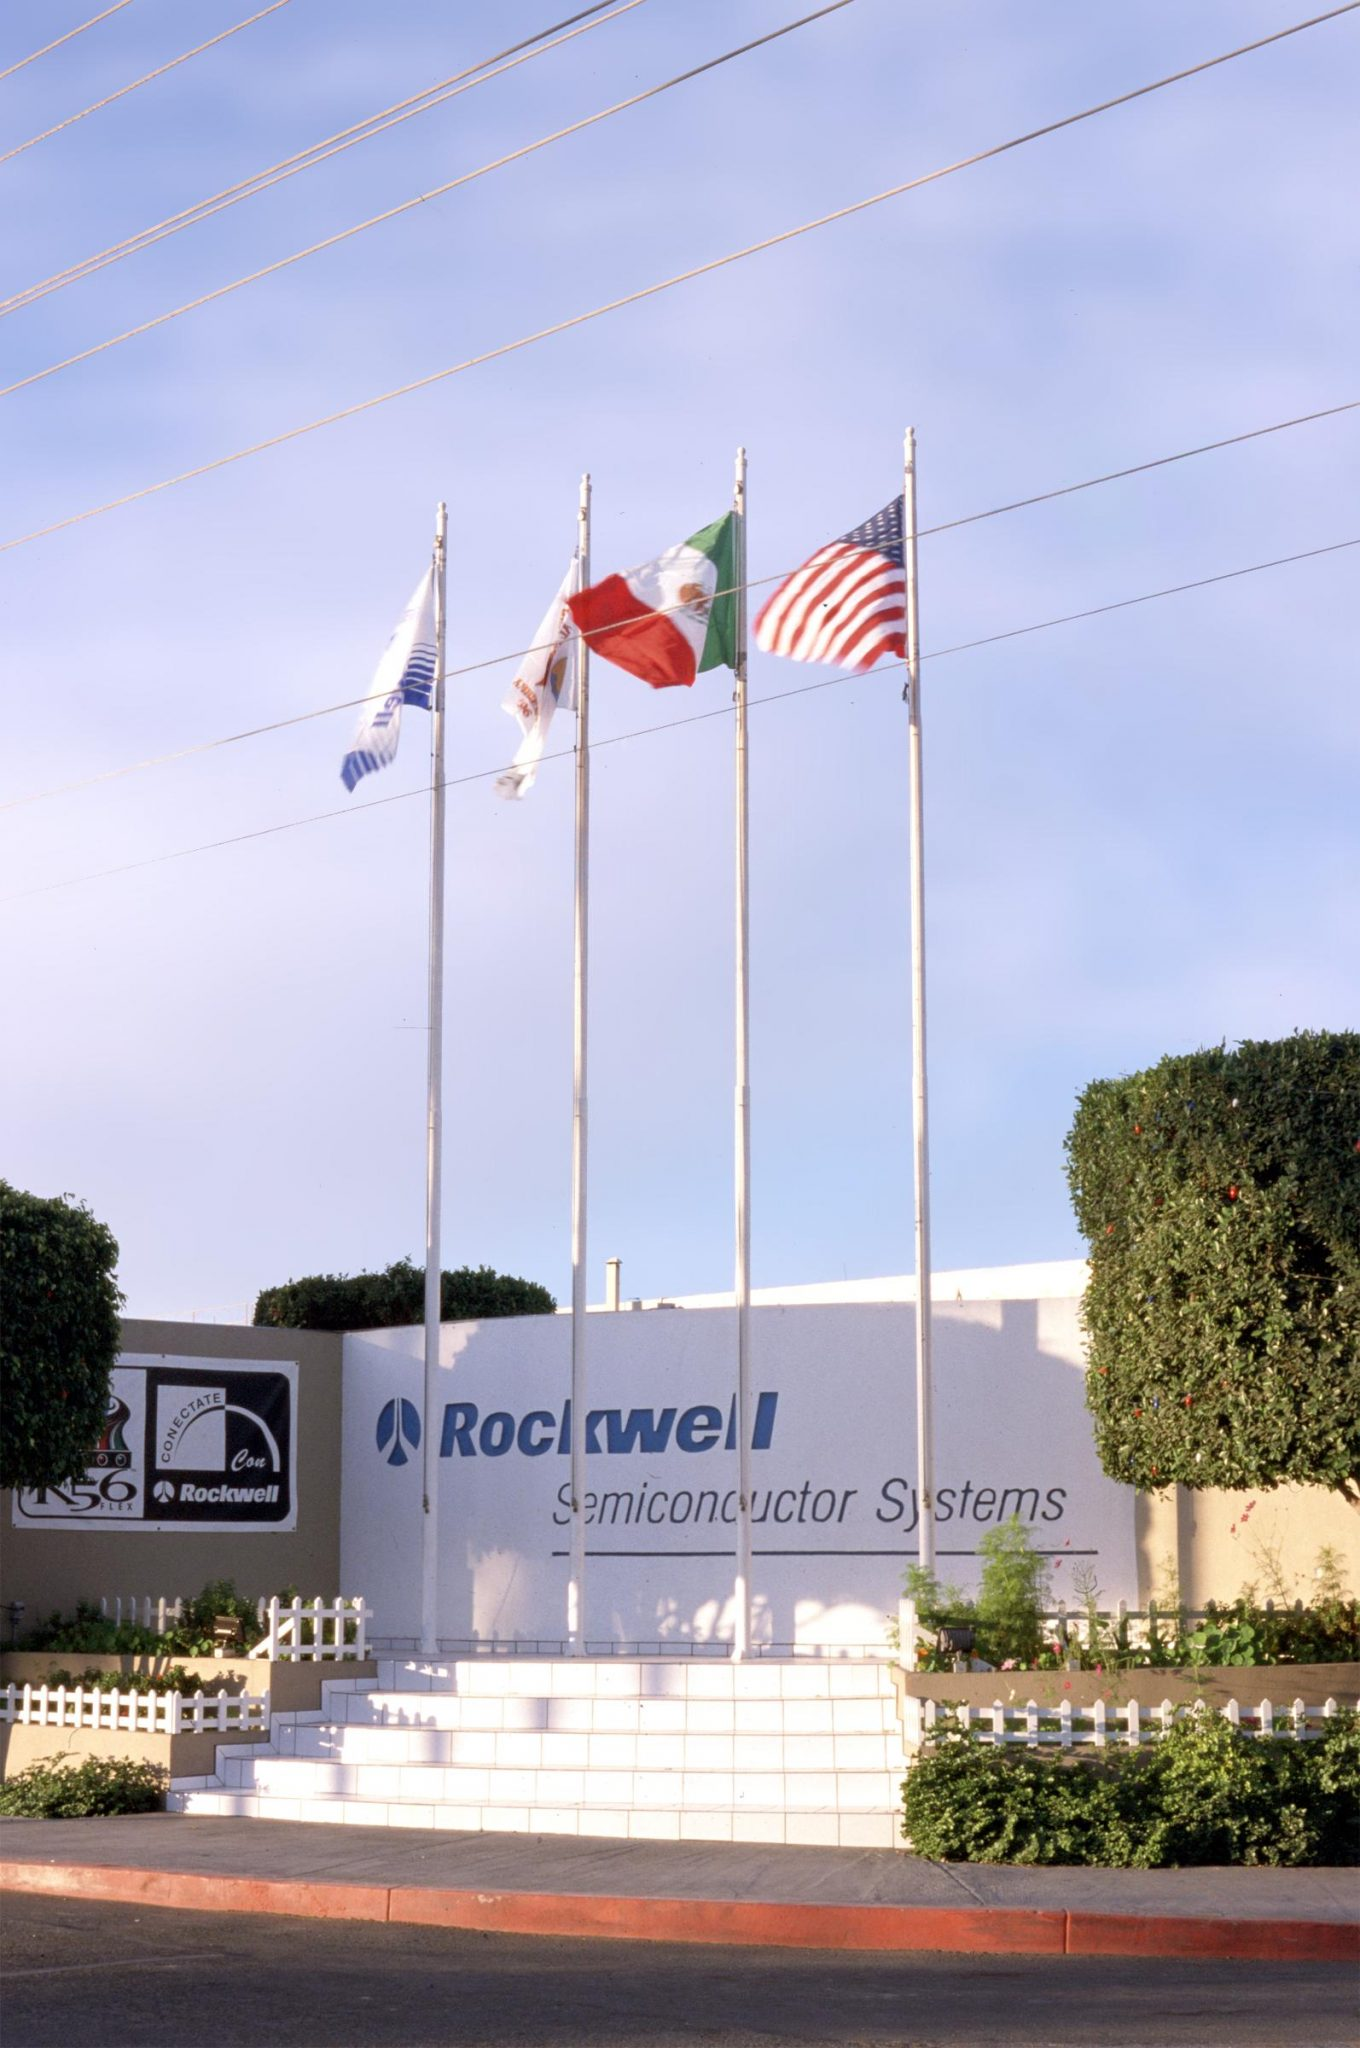 Eye level shot of Rockwell/ Skyworks industrial facility entrance and flags in Mexicali, Baja California